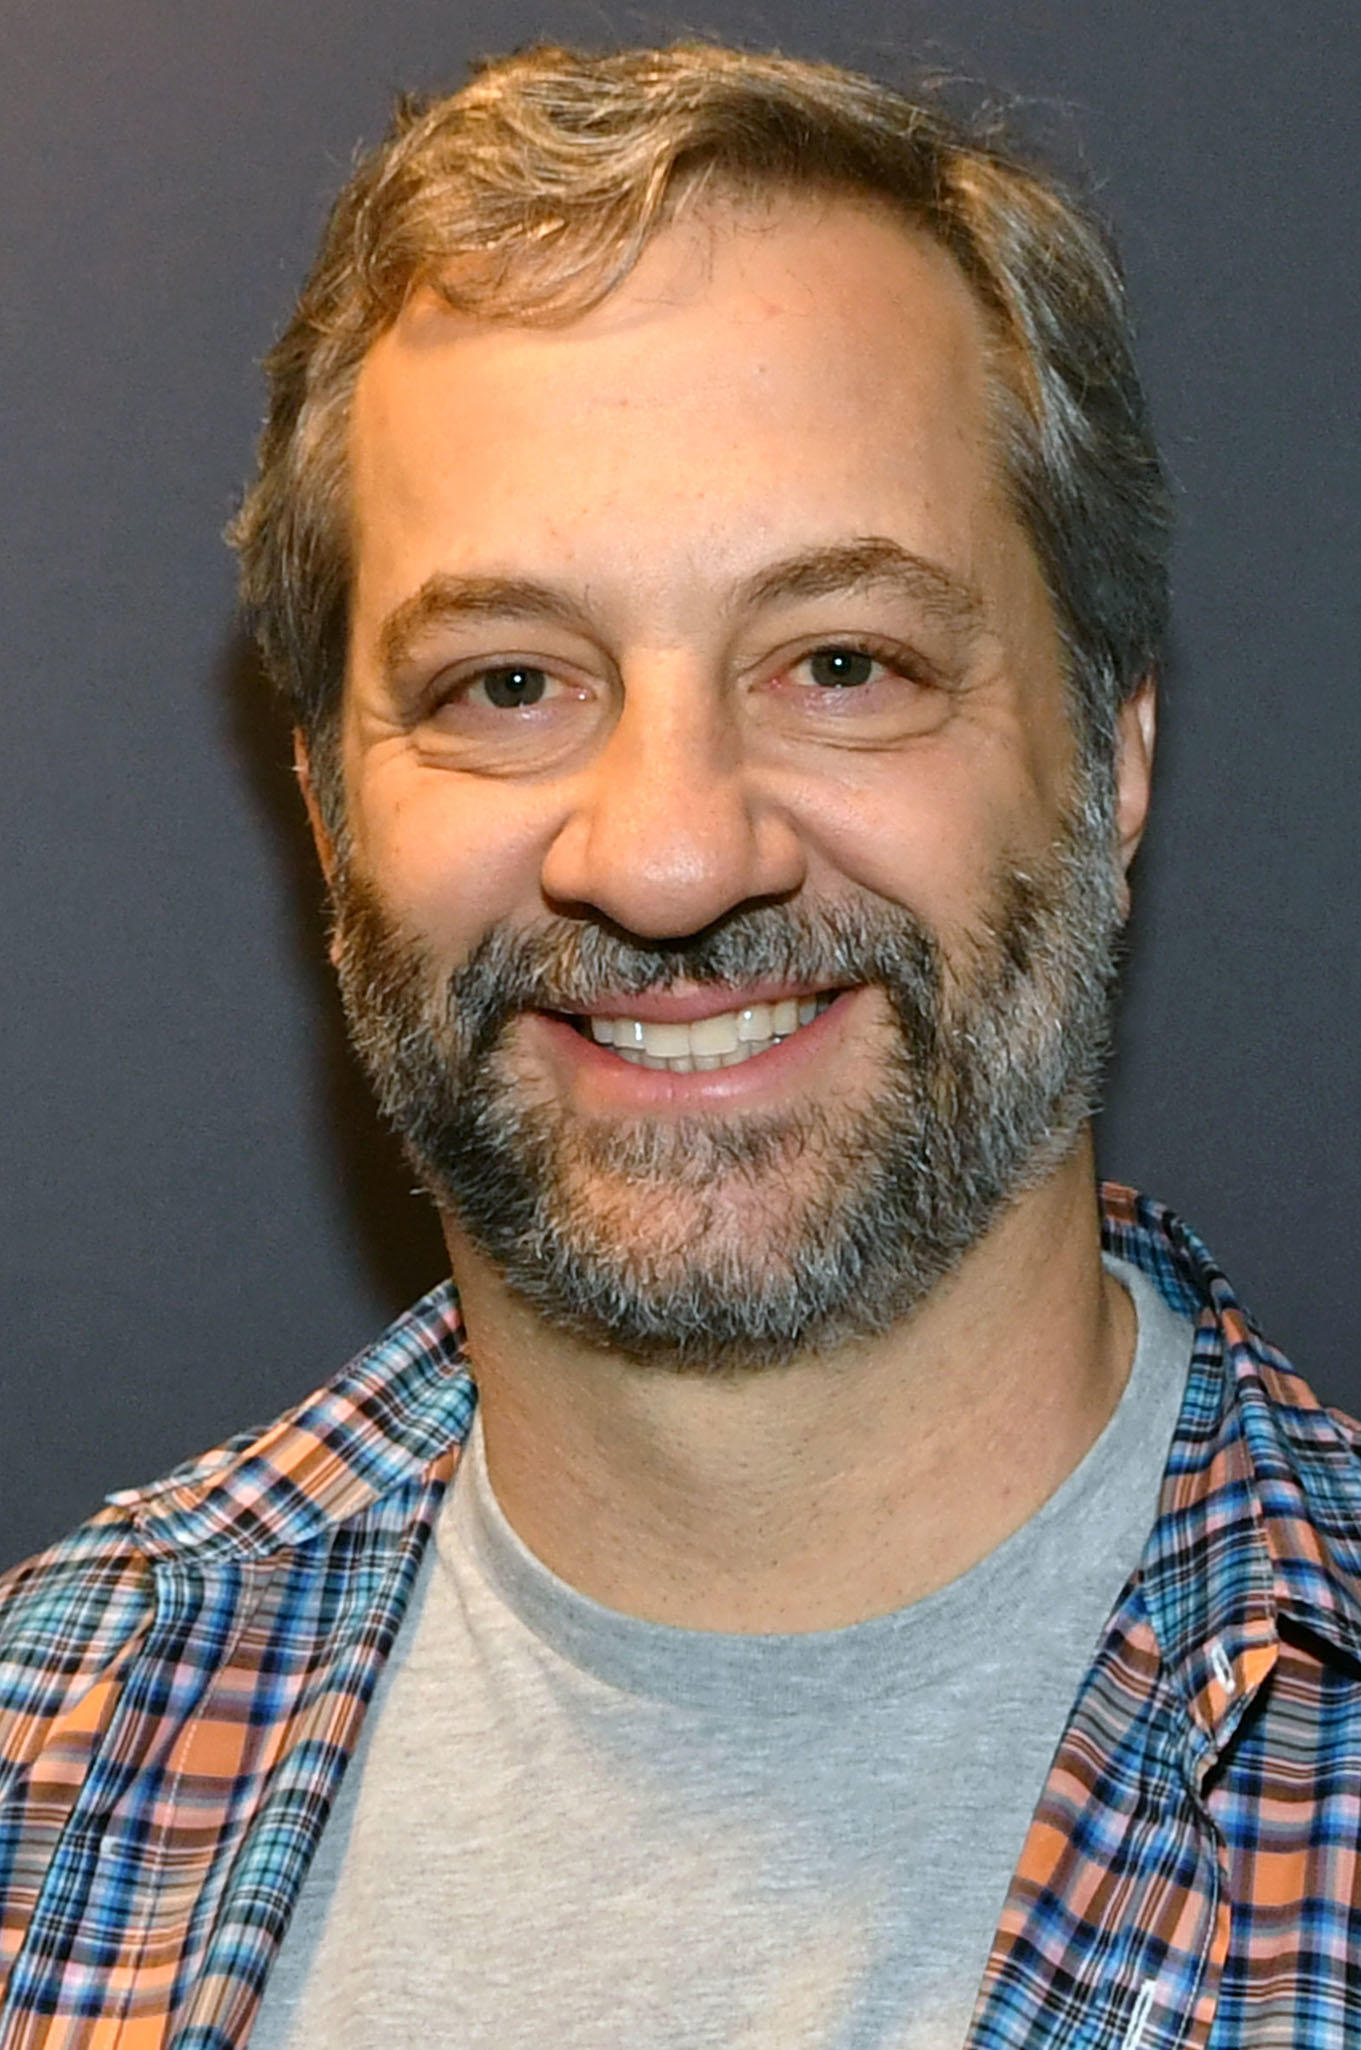 Judd Apatow at SiriusXM Studios in New York City.